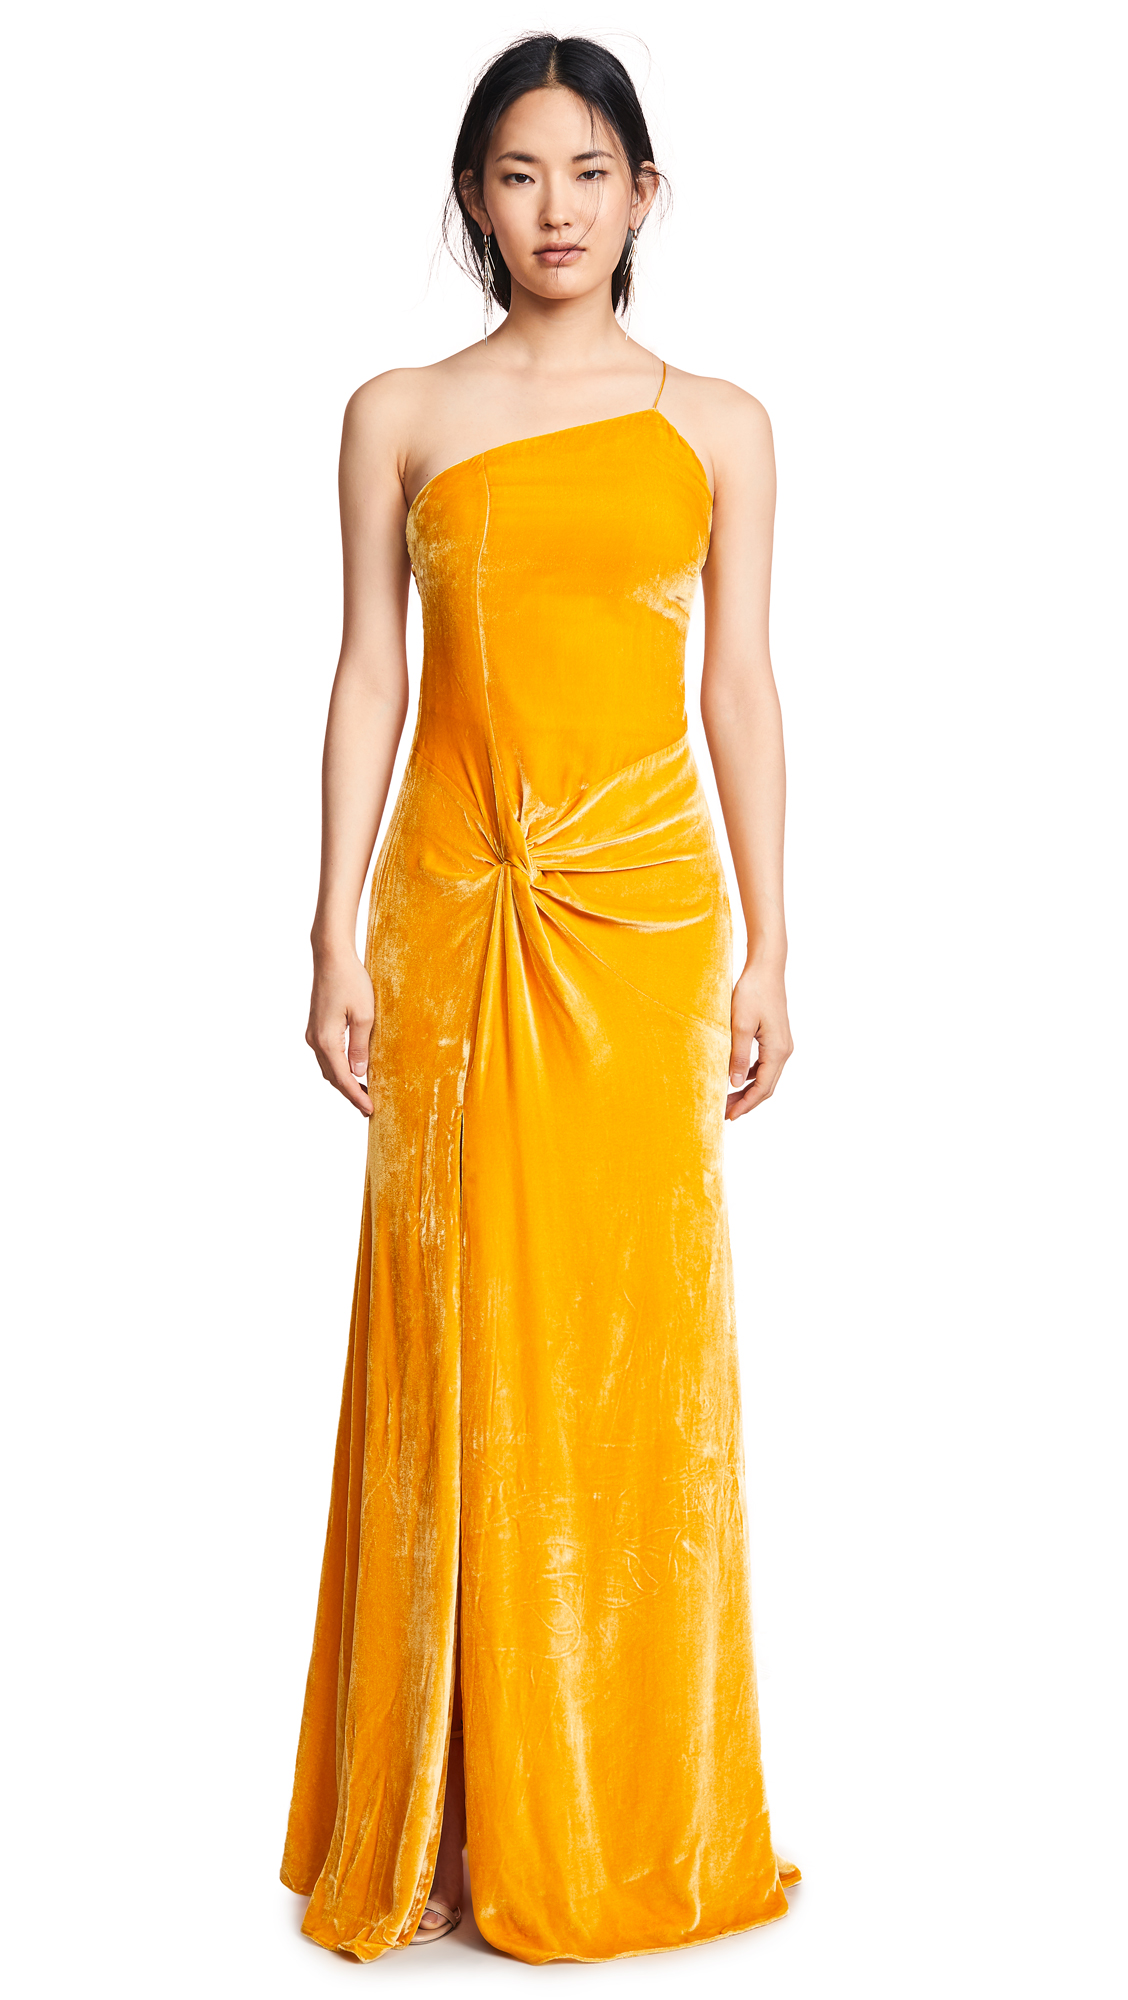 Liza One-Shoulder Knot-Front Gown in Sunflower